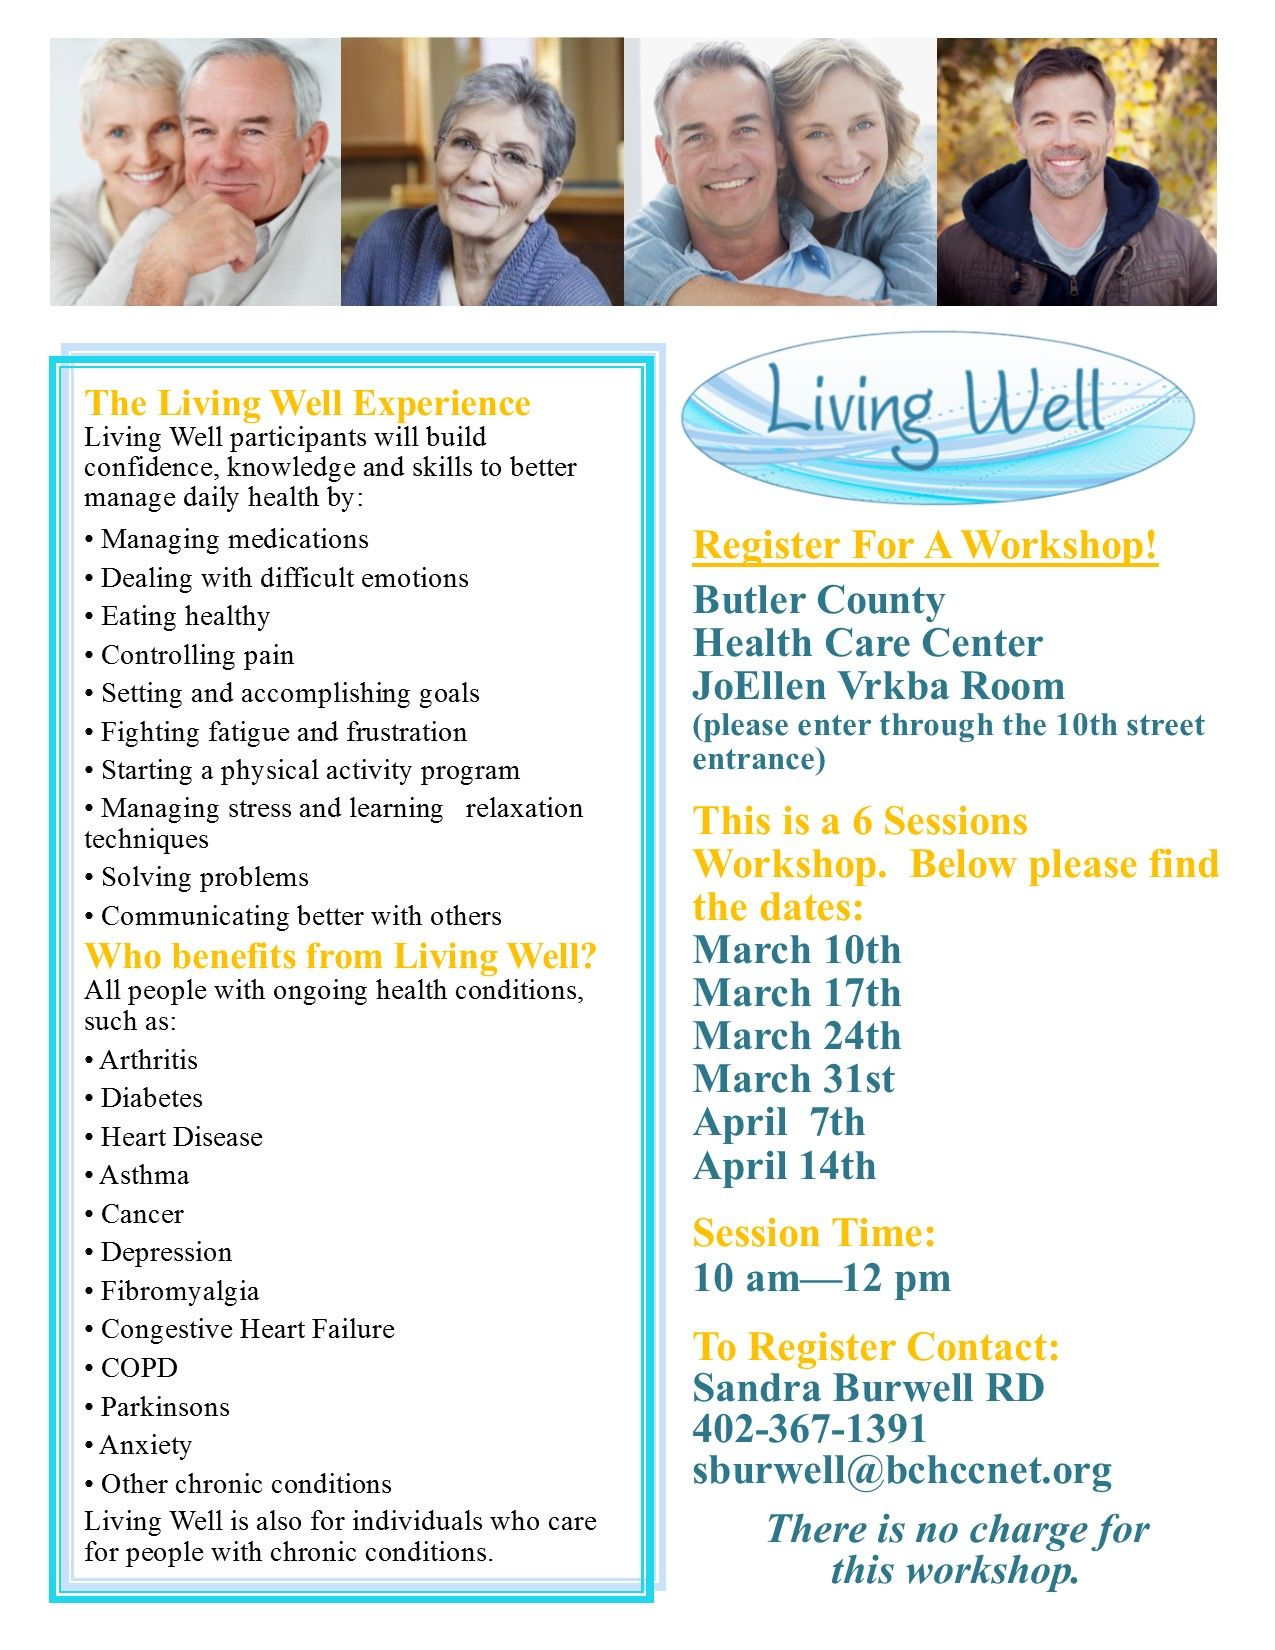 Living Well - Butler County Health Care Center